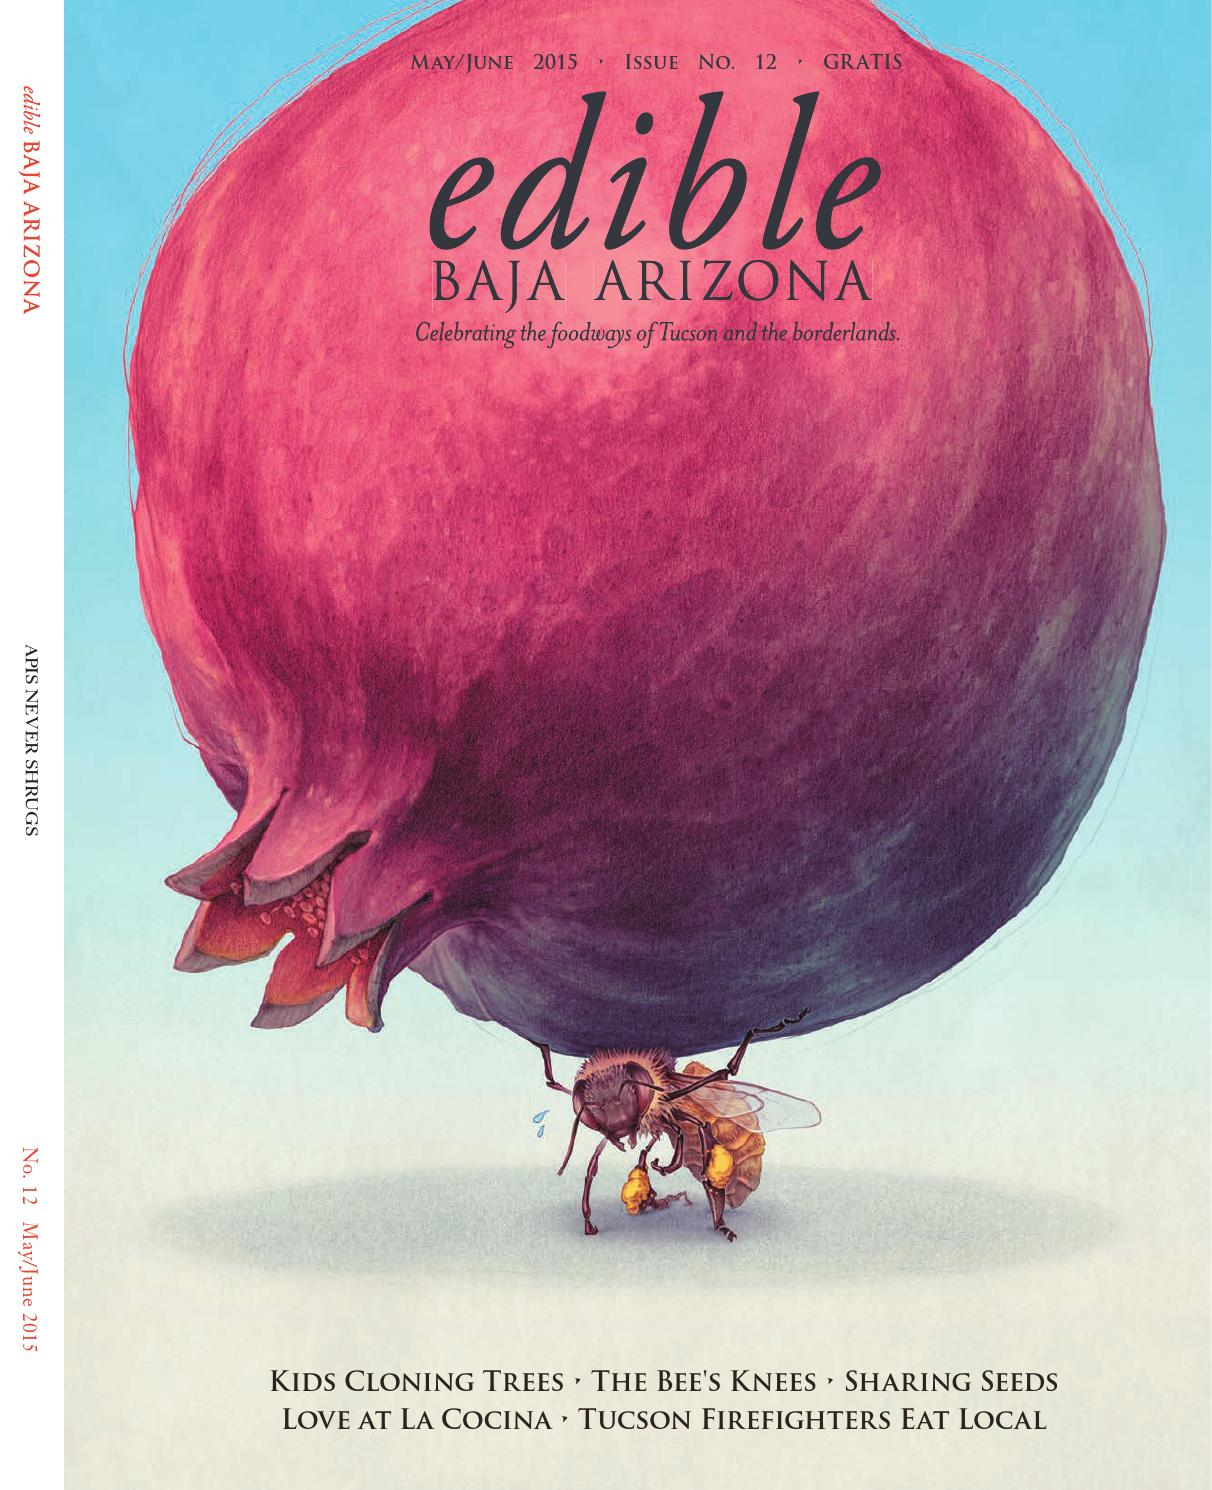 Edible Baja Arizona - May June 2015 by Edible Baja Arizona - issuu 9c5fbcc82231